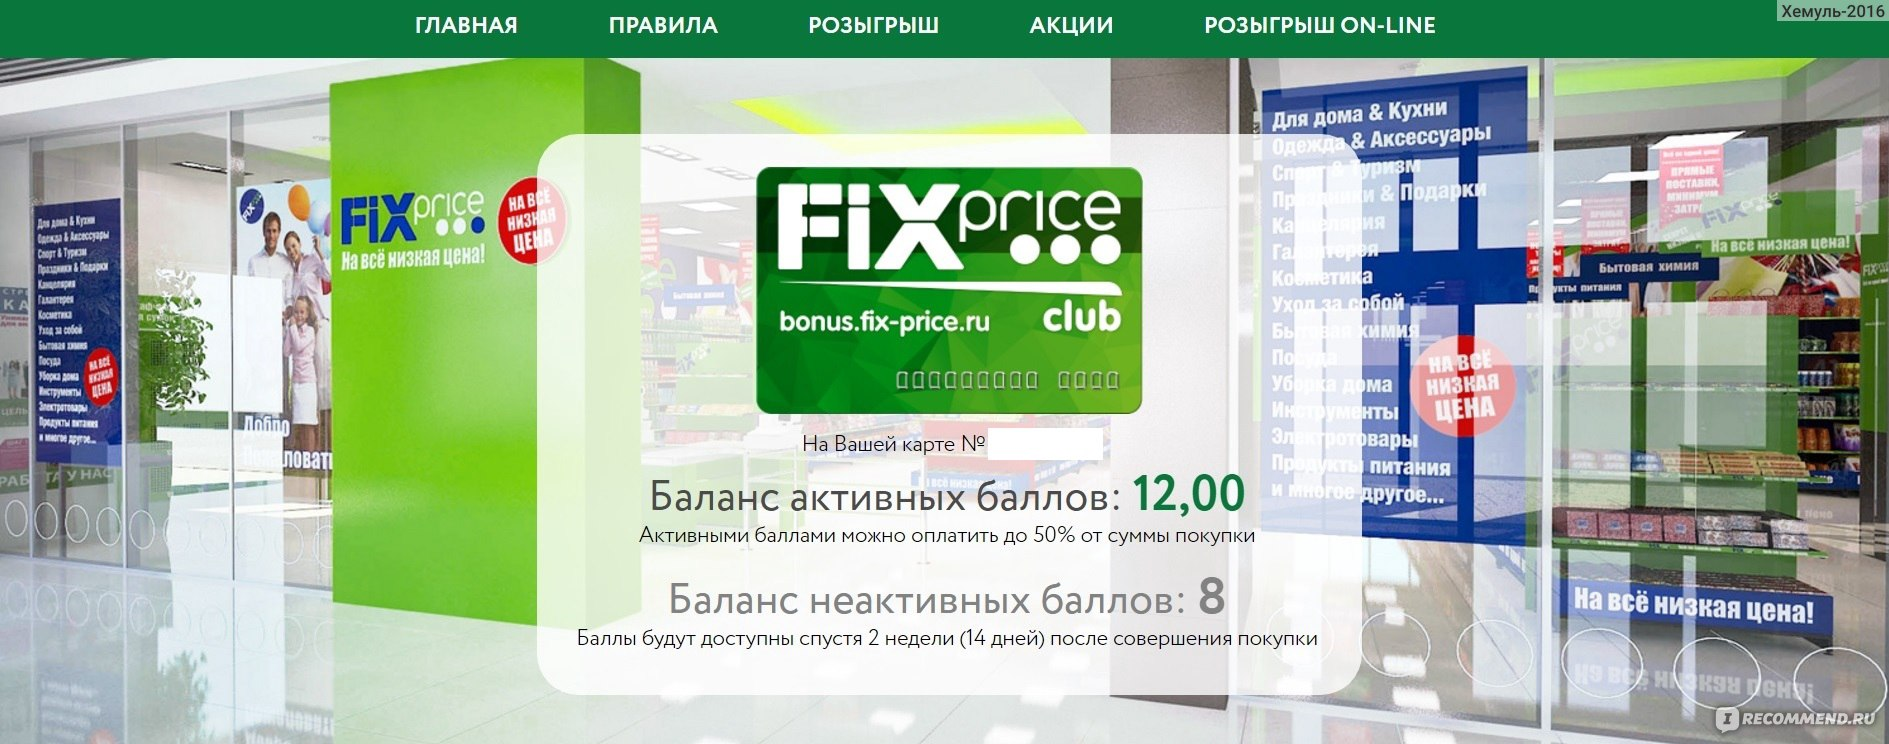 Сайт bonus fix price ru монетка события